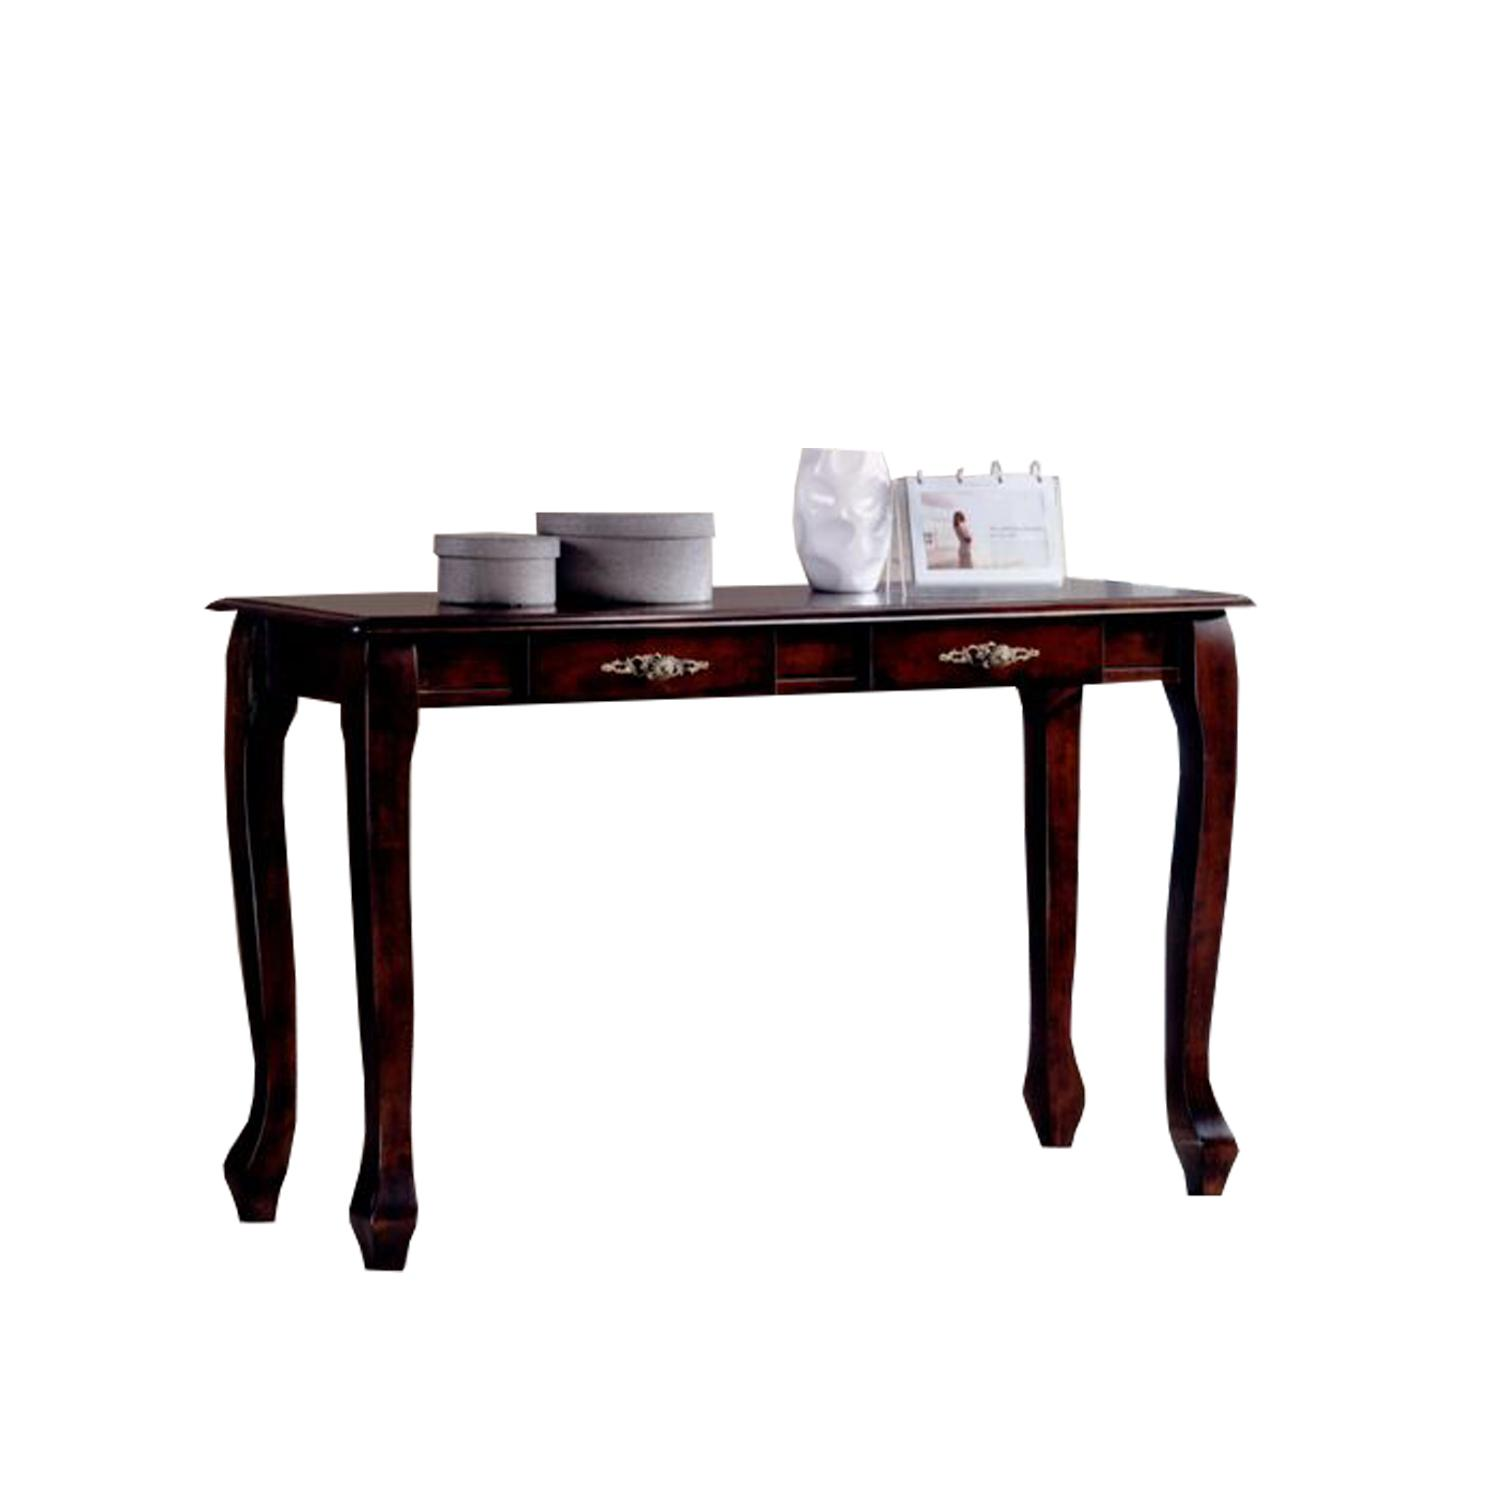 Berry Console Table By Living Mall.